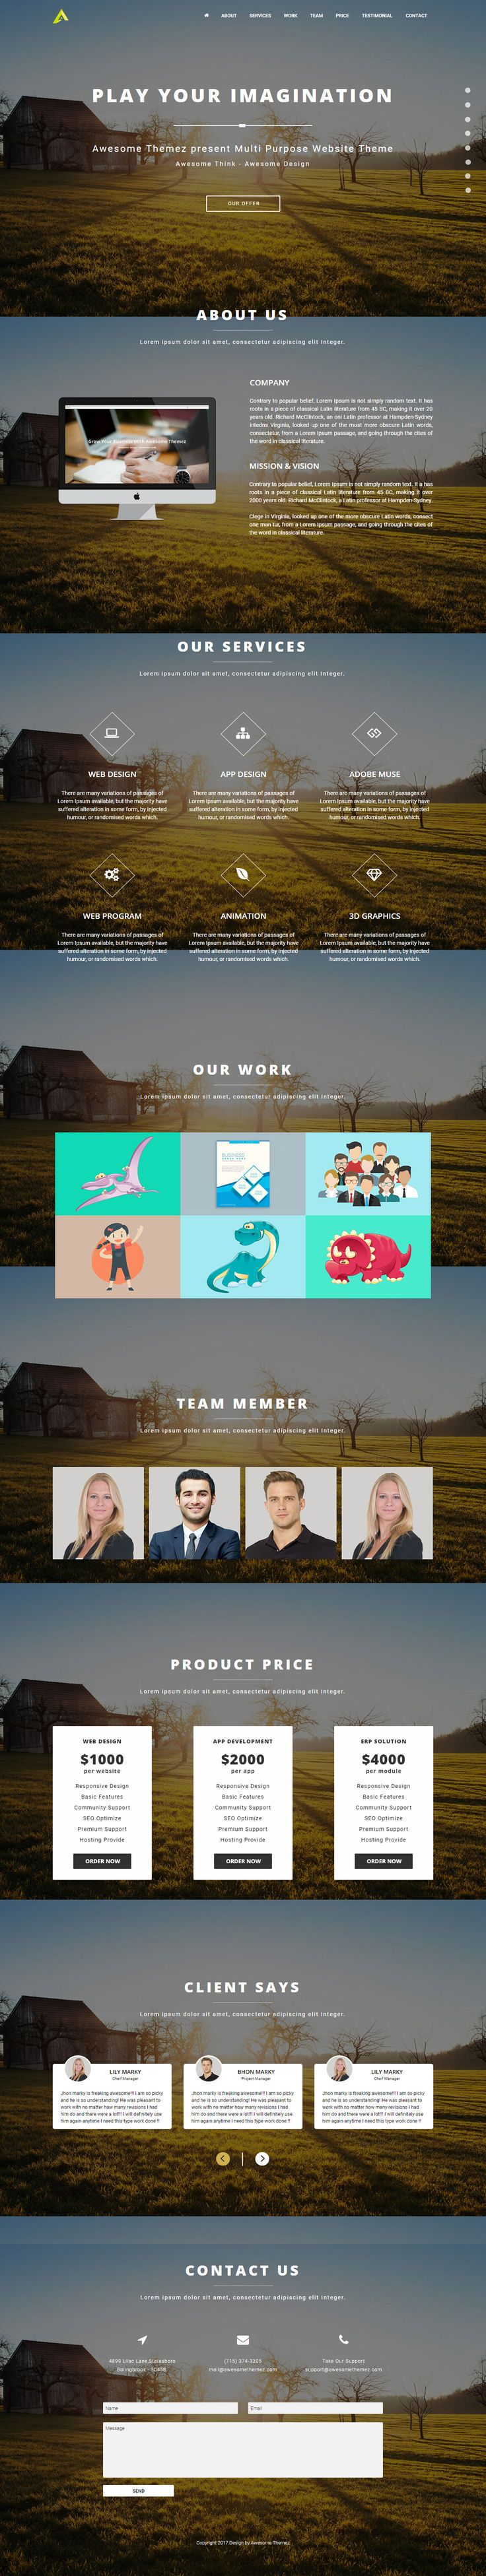 83 best muse templates images on pinterest adobe muse design animate is premium fully responsive musetemplate with onepagedesign if you like this template pronofoot35fo Images